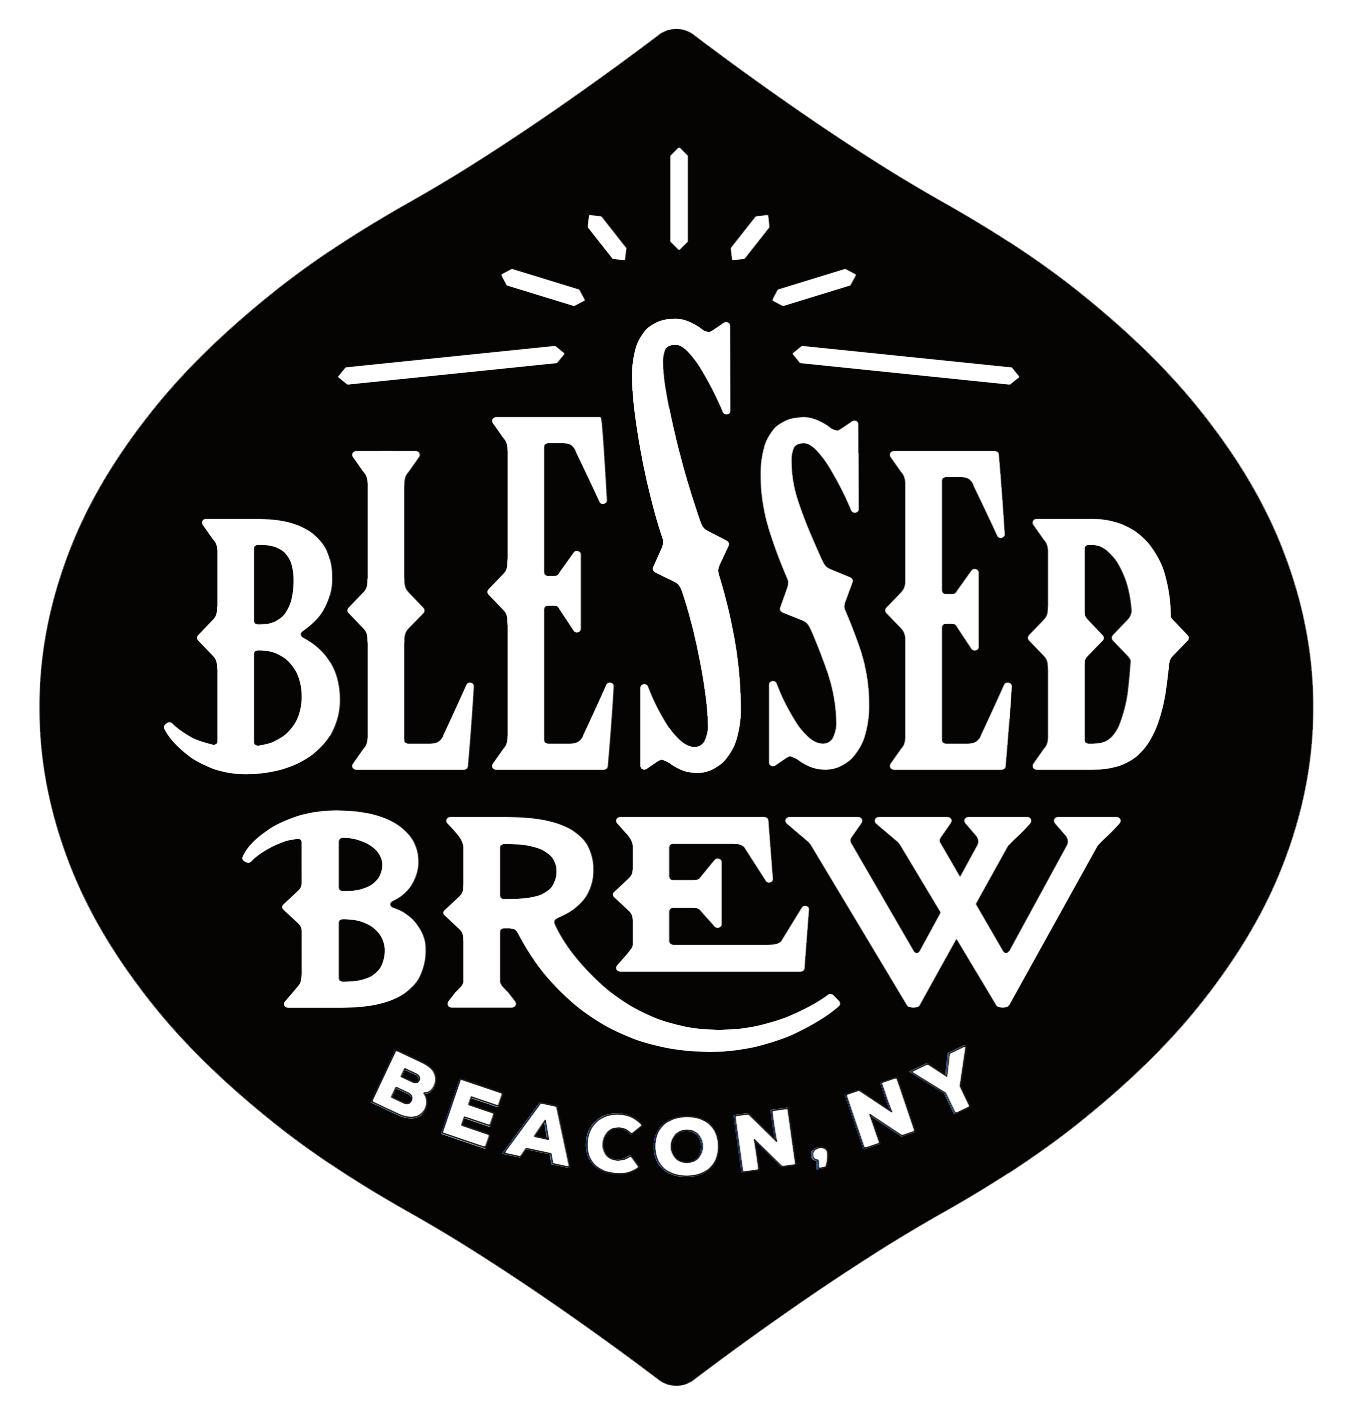 Blessed Brewery